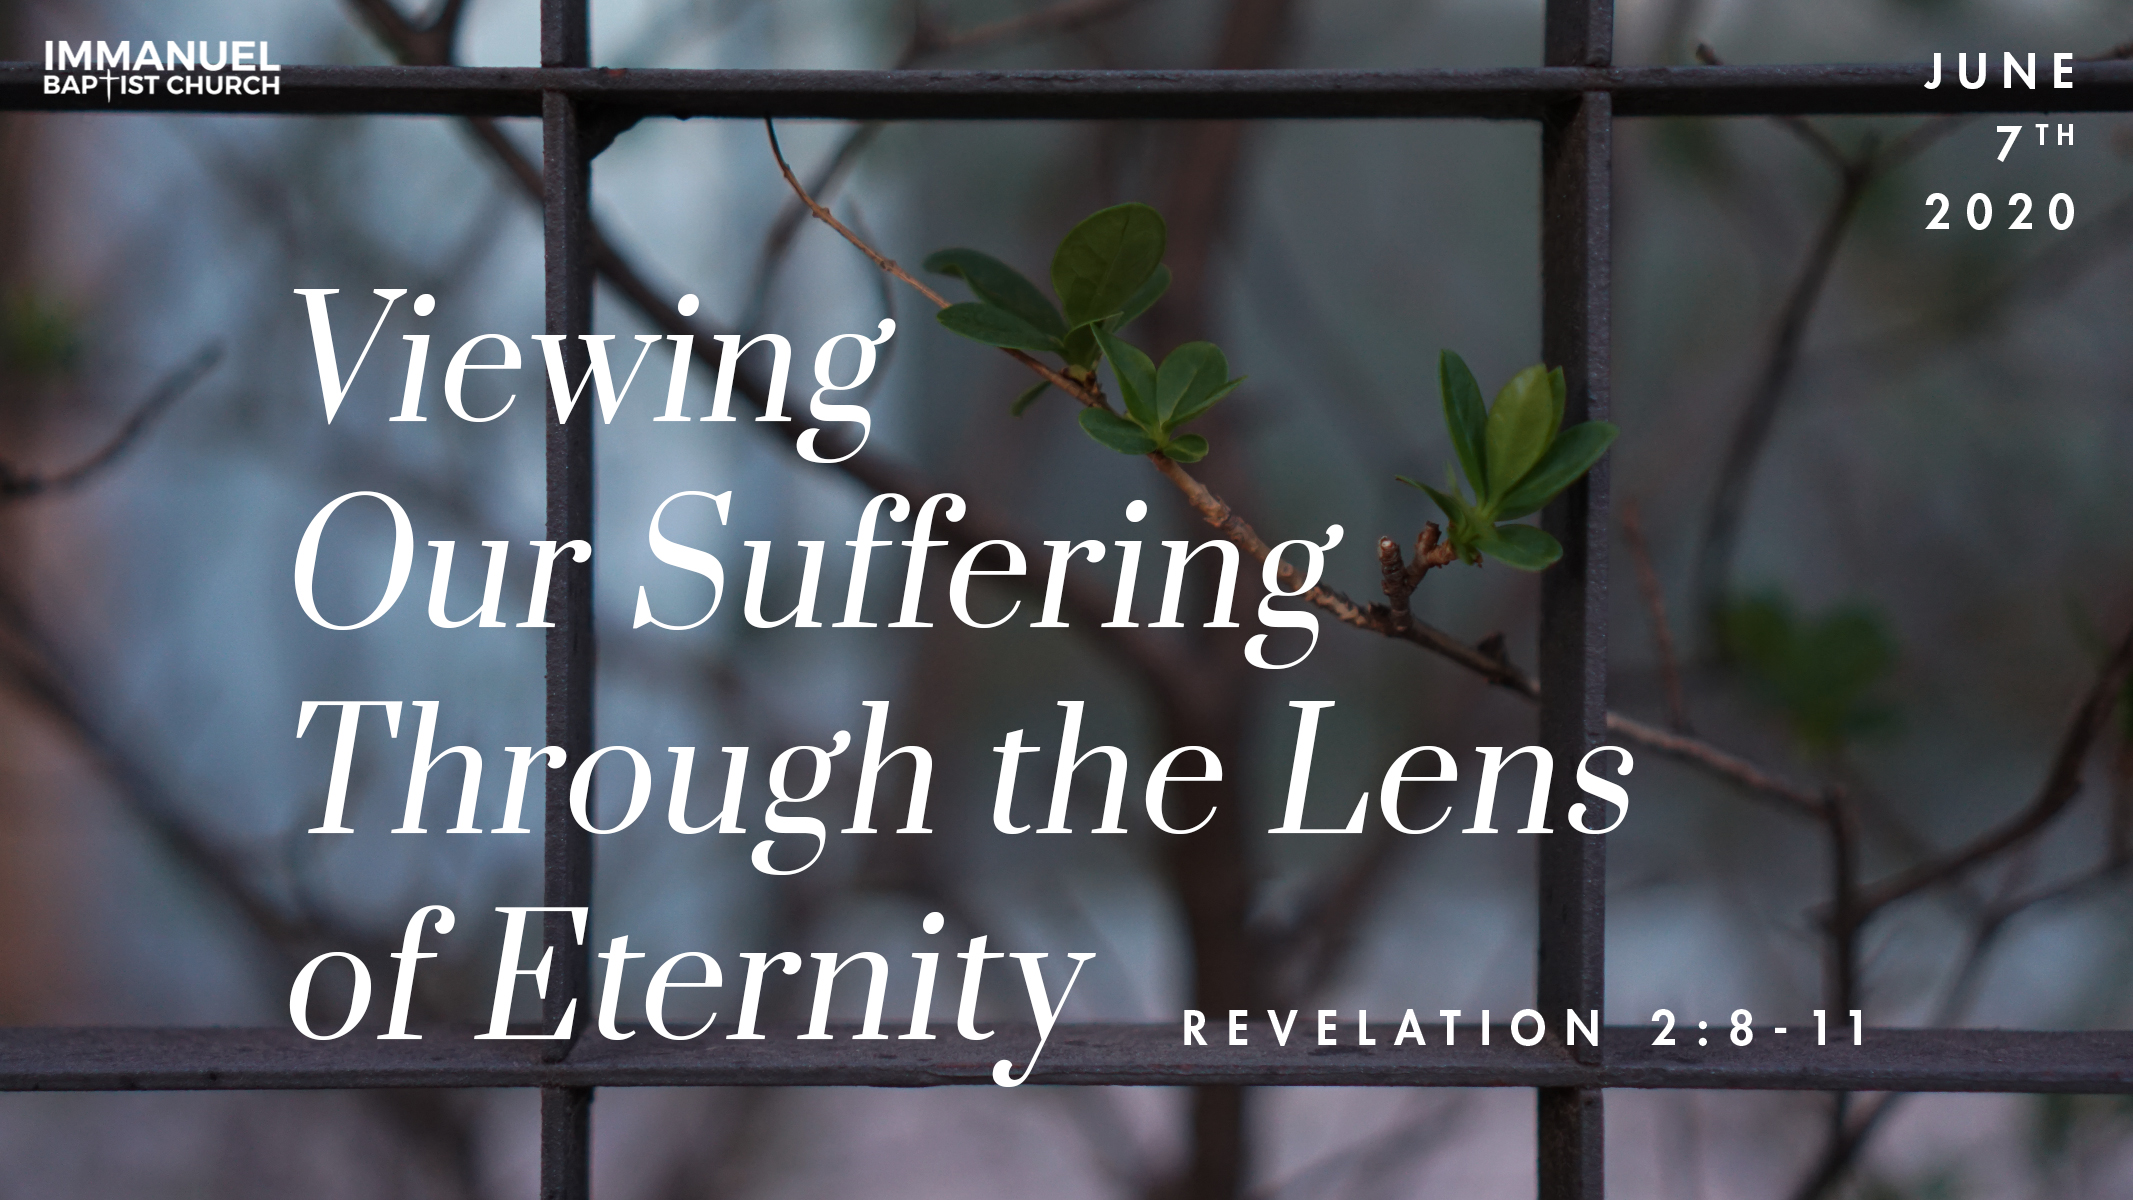 Viewing Our Suffering Through the Lens of Eternity Image